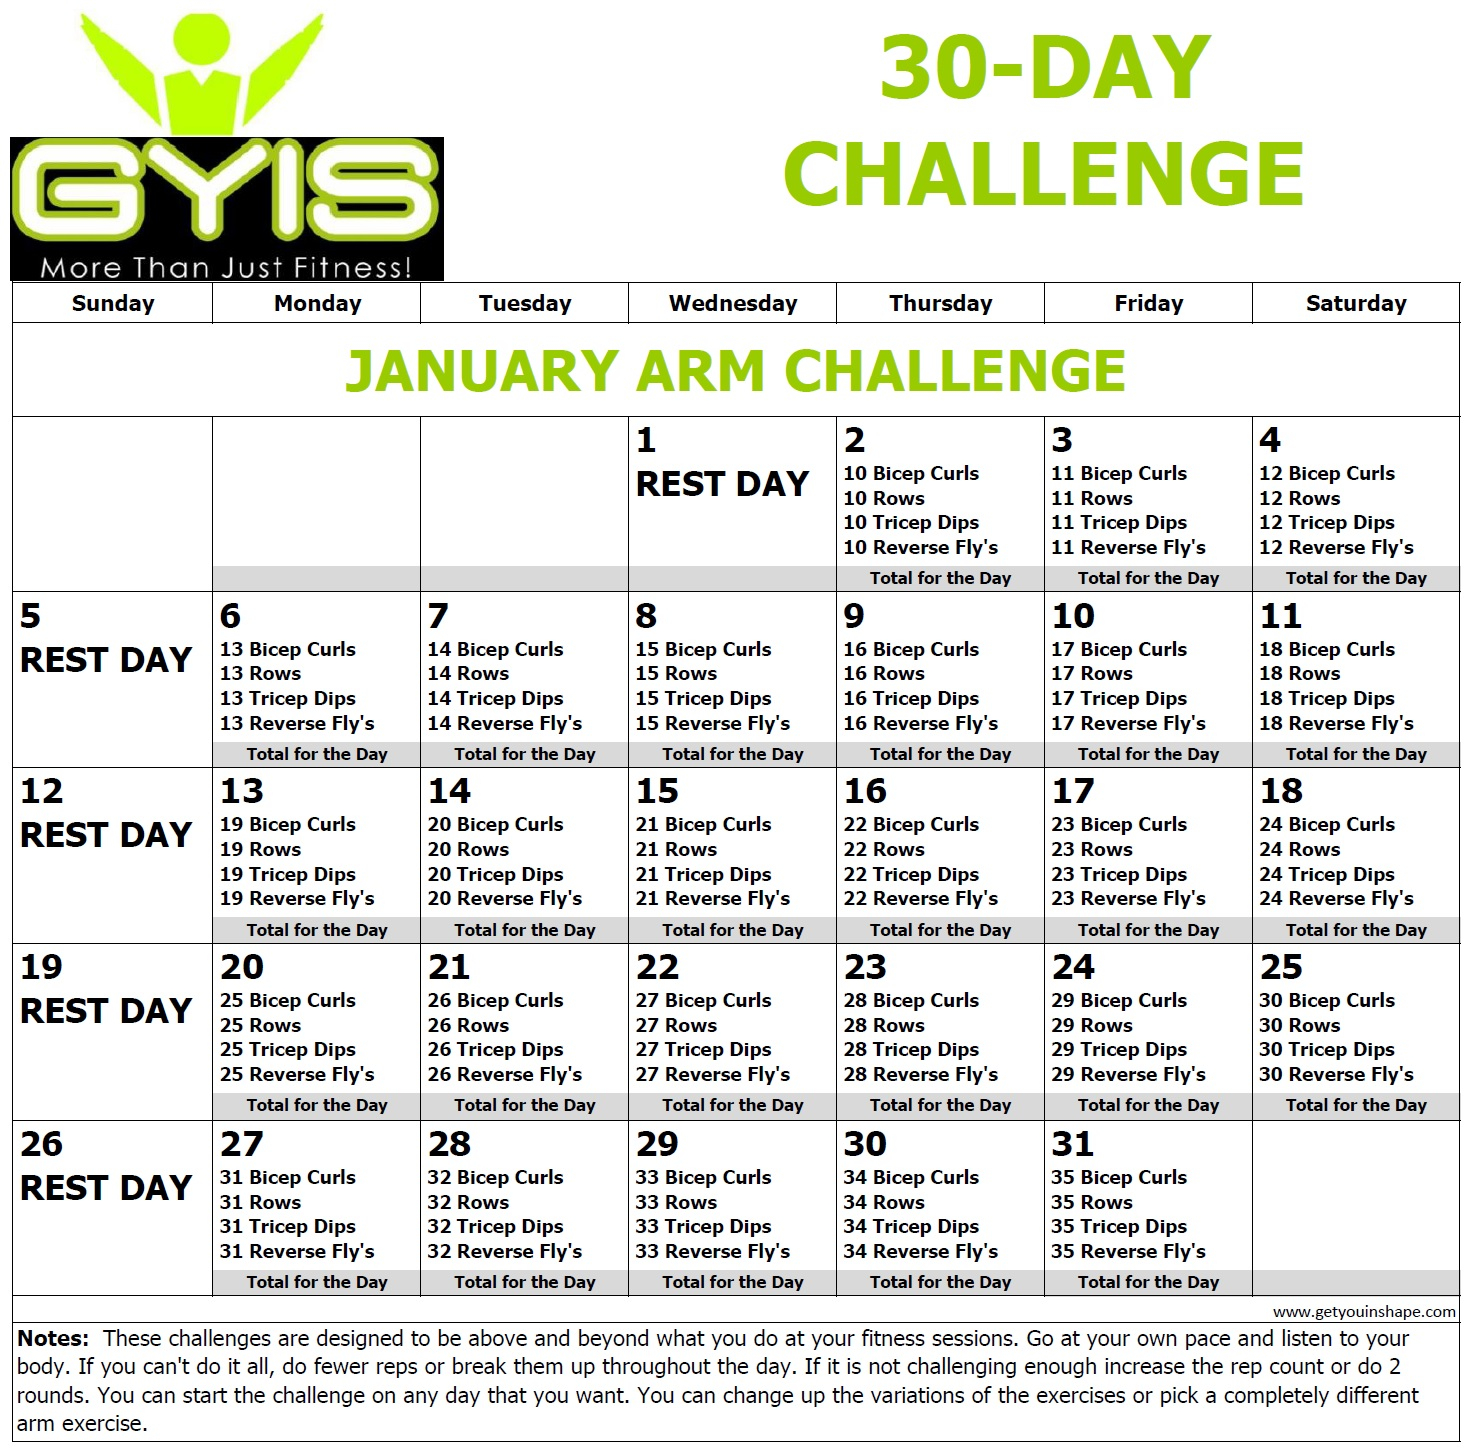 30 Day Arm Challenge Jan 20 - With 30 Day Arm Challenge Pdf